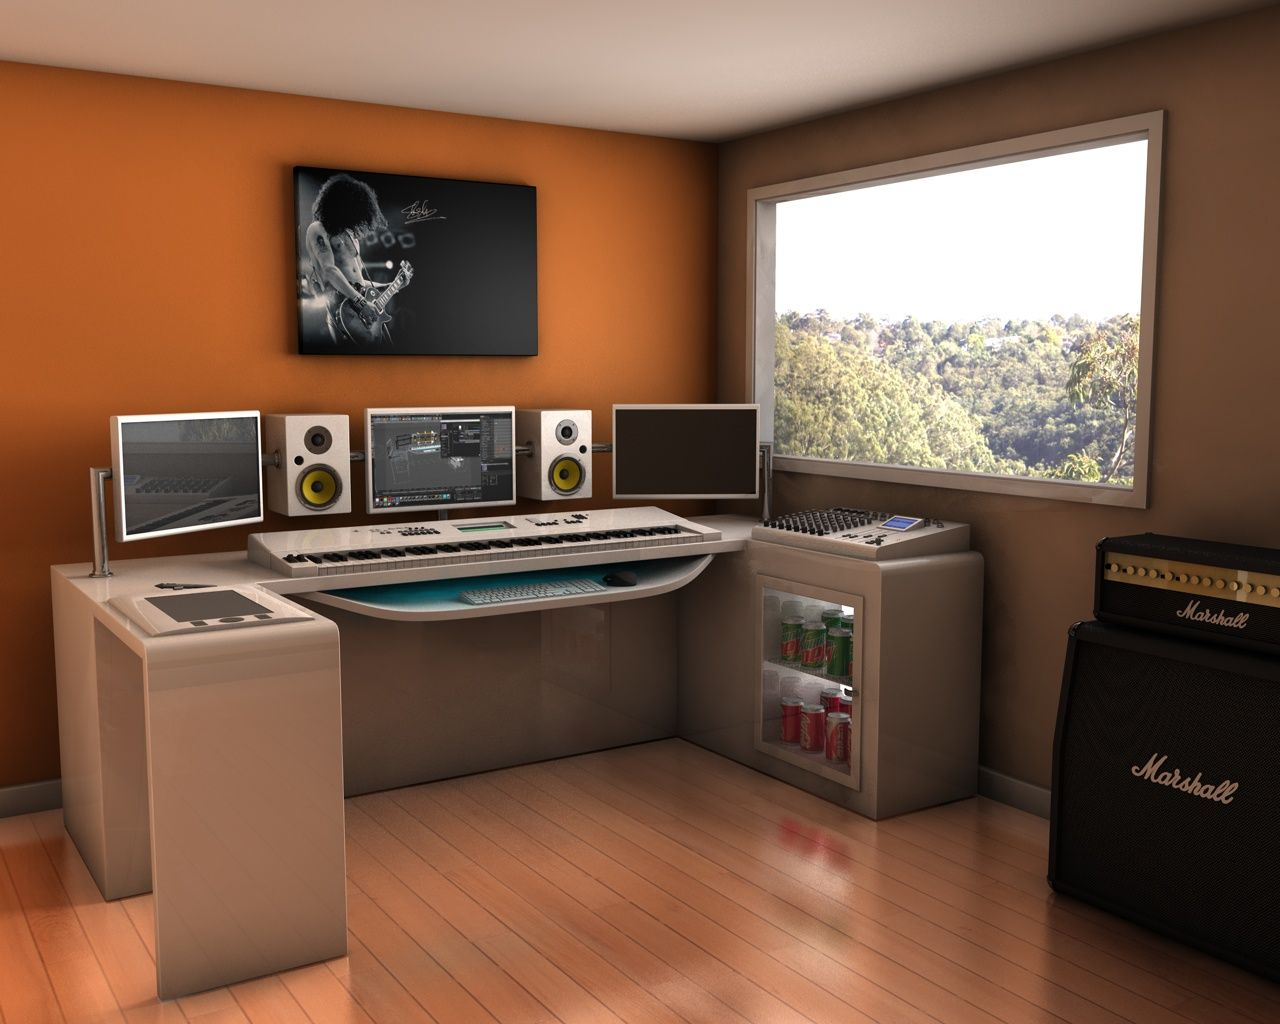 Enjoyable 17 Best Ideas About Music Studio Room On Pinterest Recording Largest Home Design Picture Inspirations Pitcheantrous